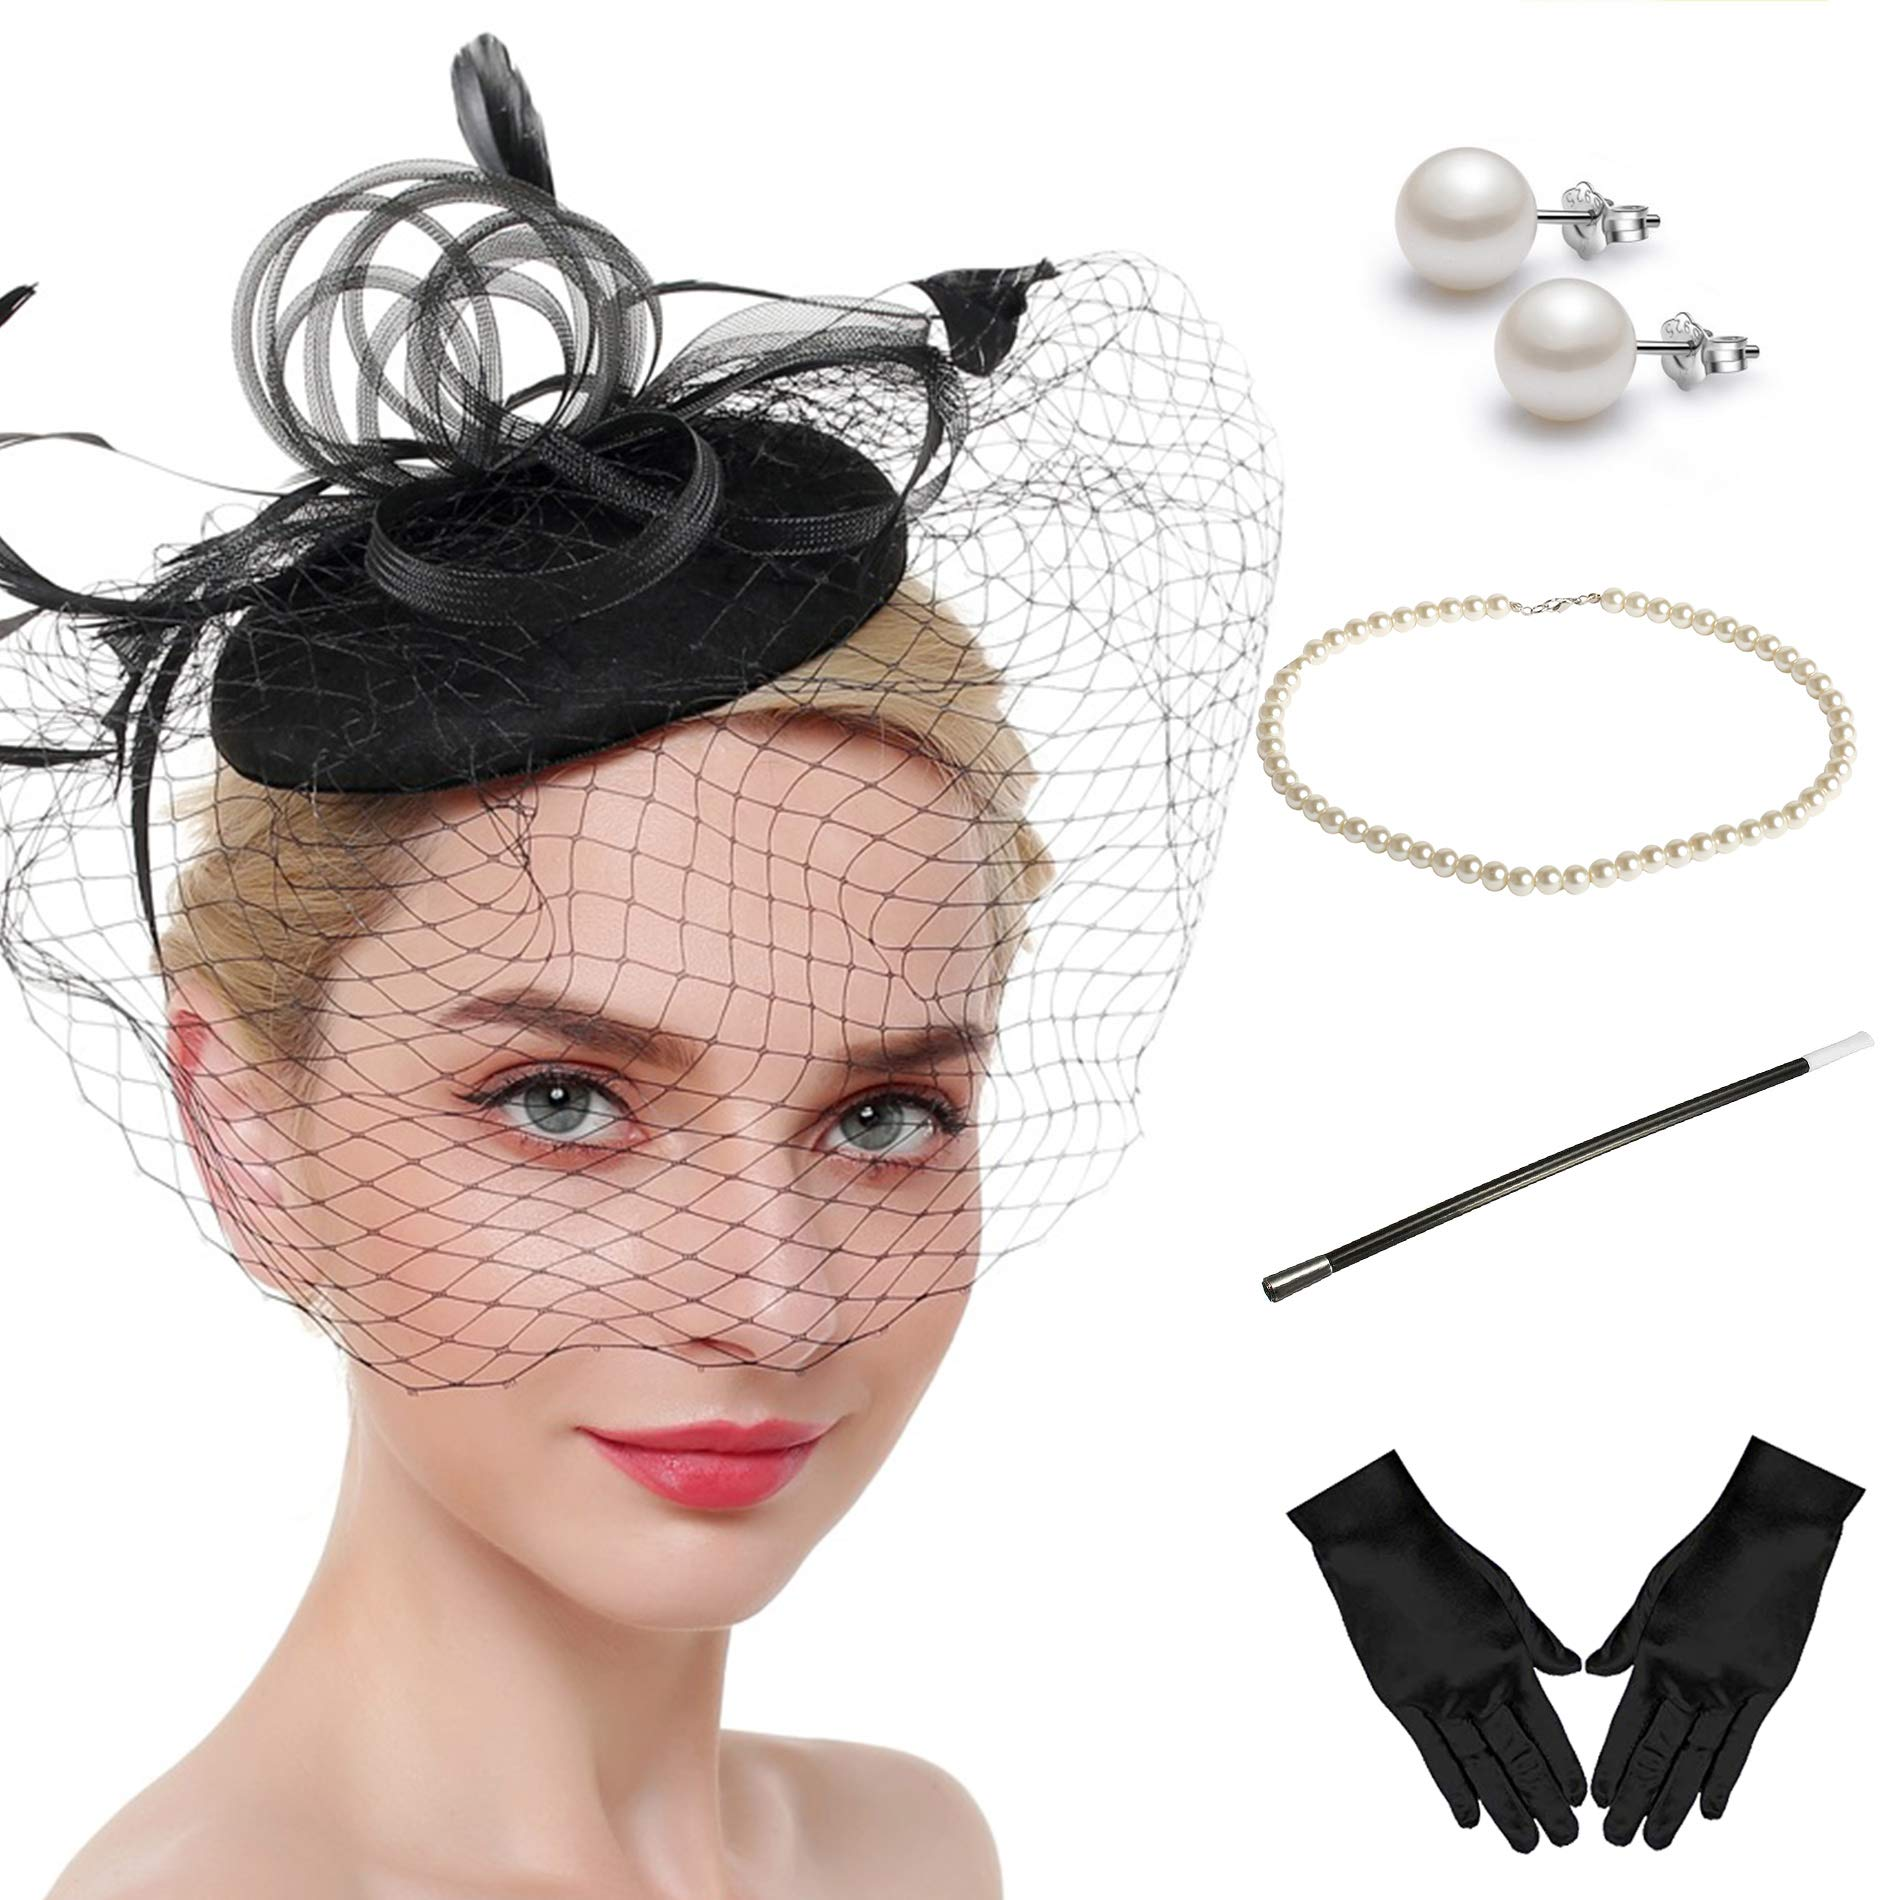 Fascinator Hats for Women Pillbox Hat with Veil Headband and a Forked Clip Tea Party Headwear (Z-Set C)